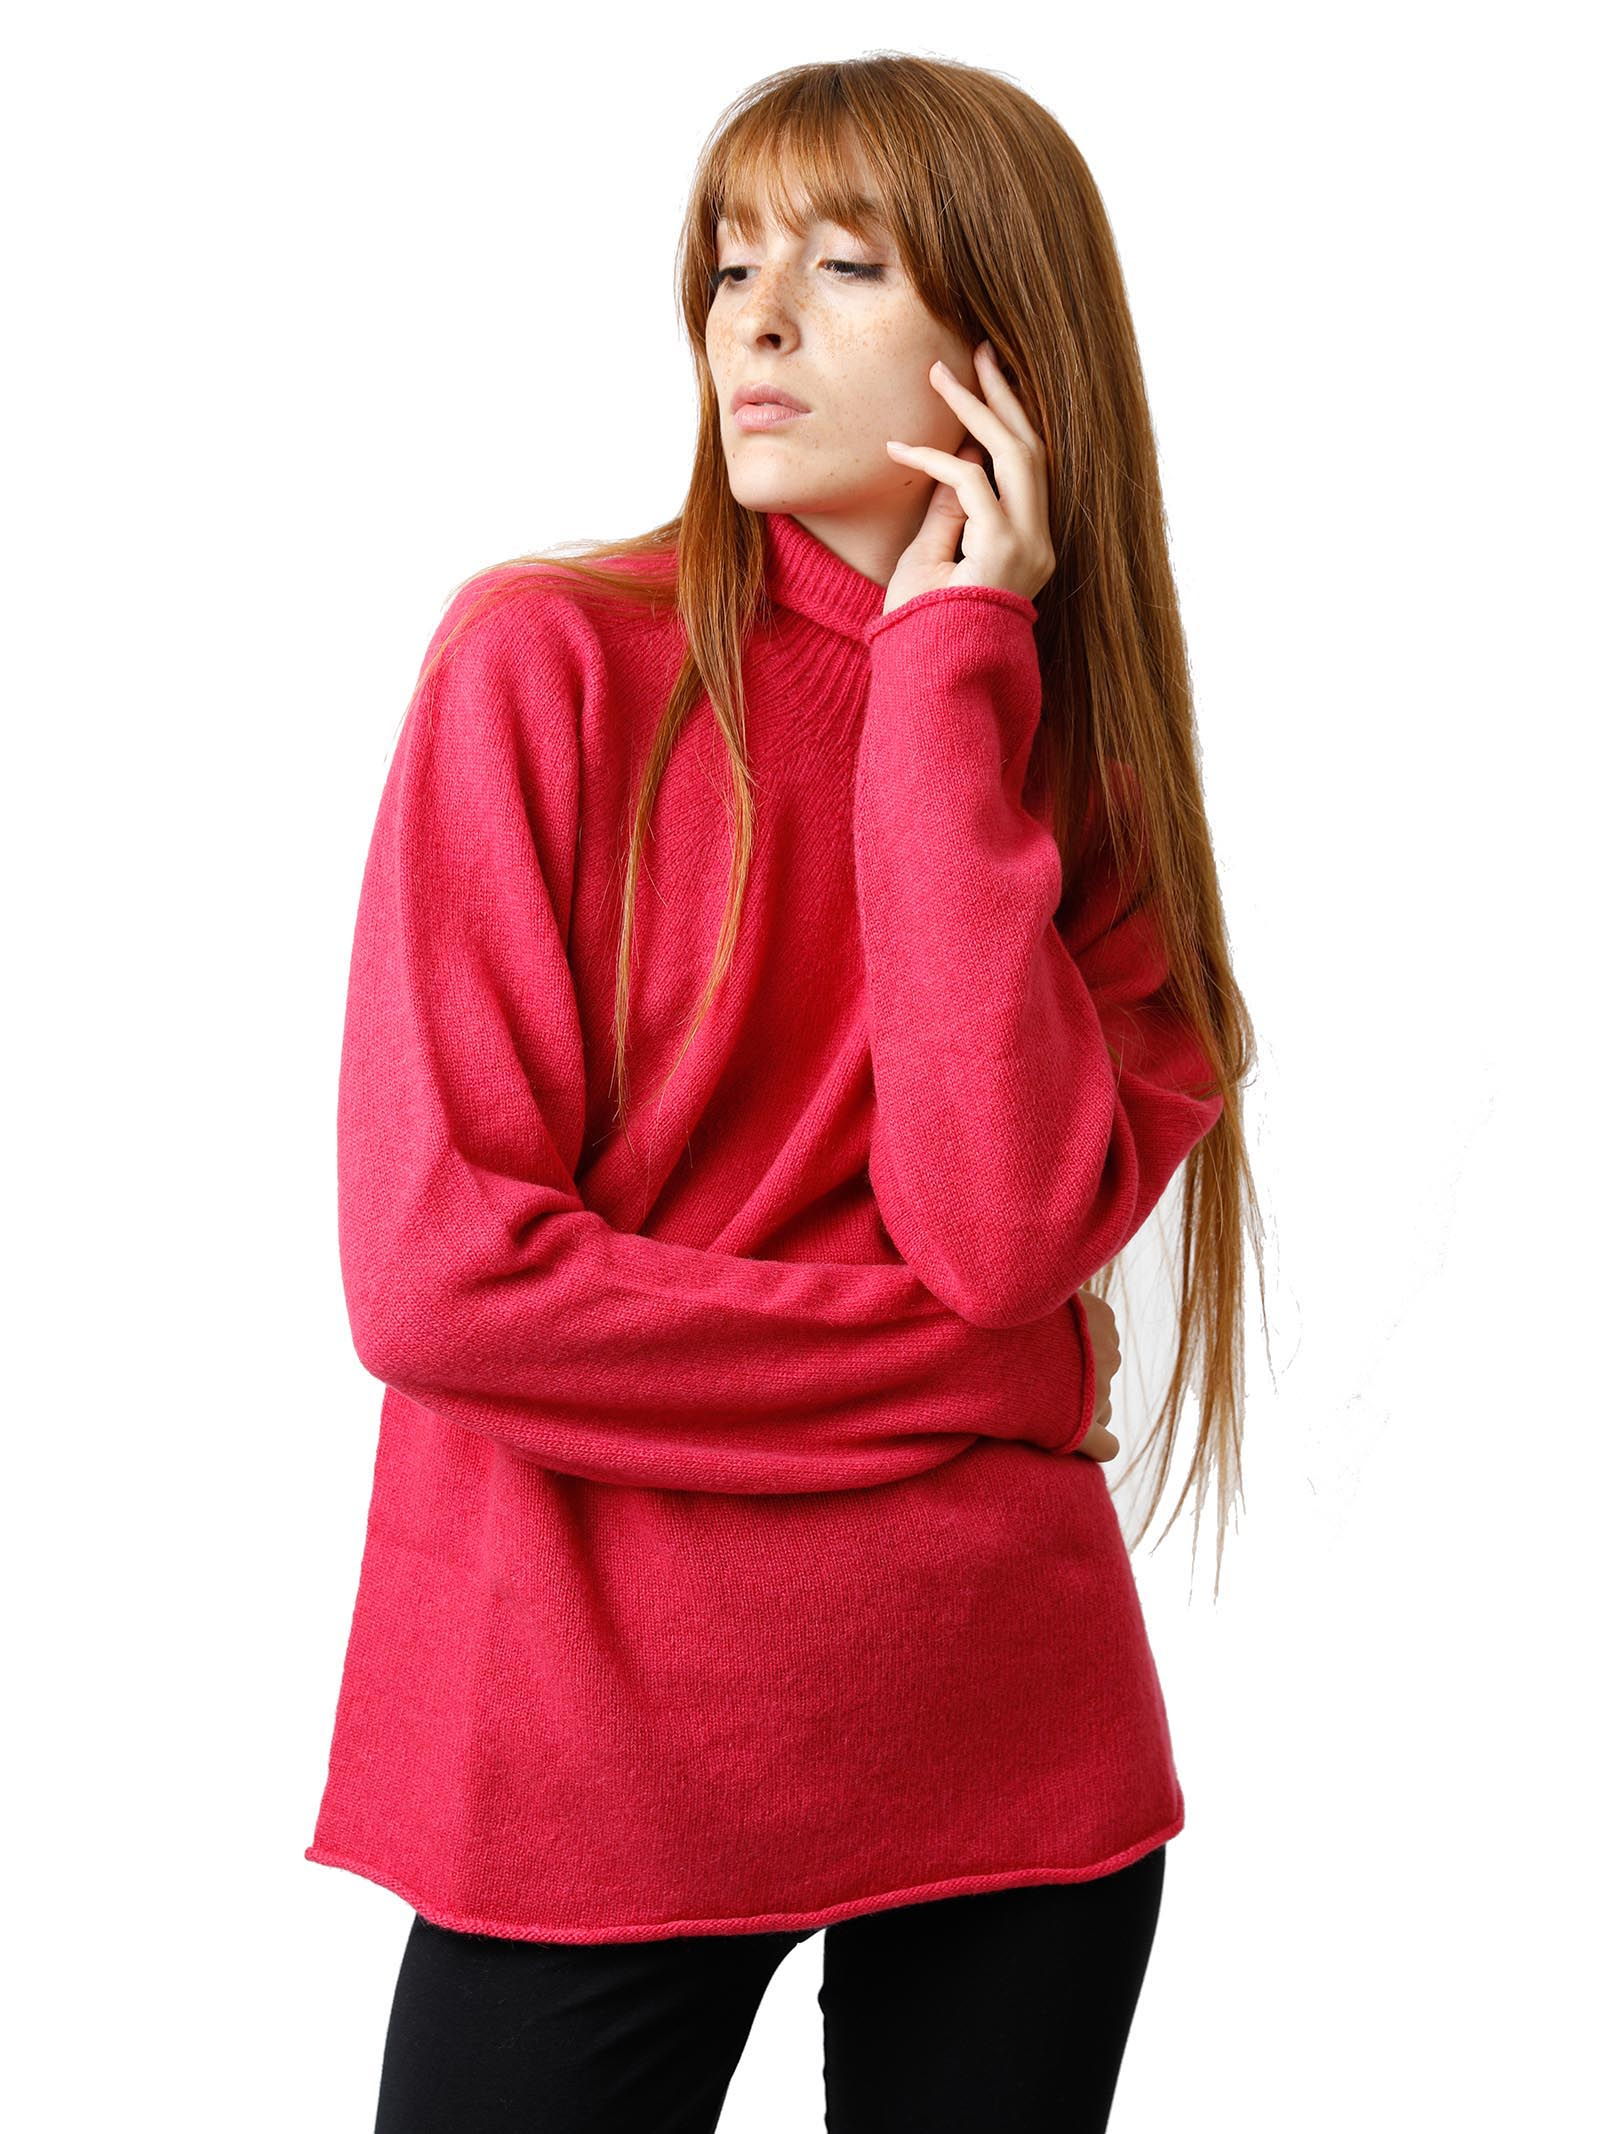 Women's Clothing Soft Cash Sweater in Geranium Cashmere with High Neck and Flared Bottom Maliparmi   Knitwear   JQ48797045734007